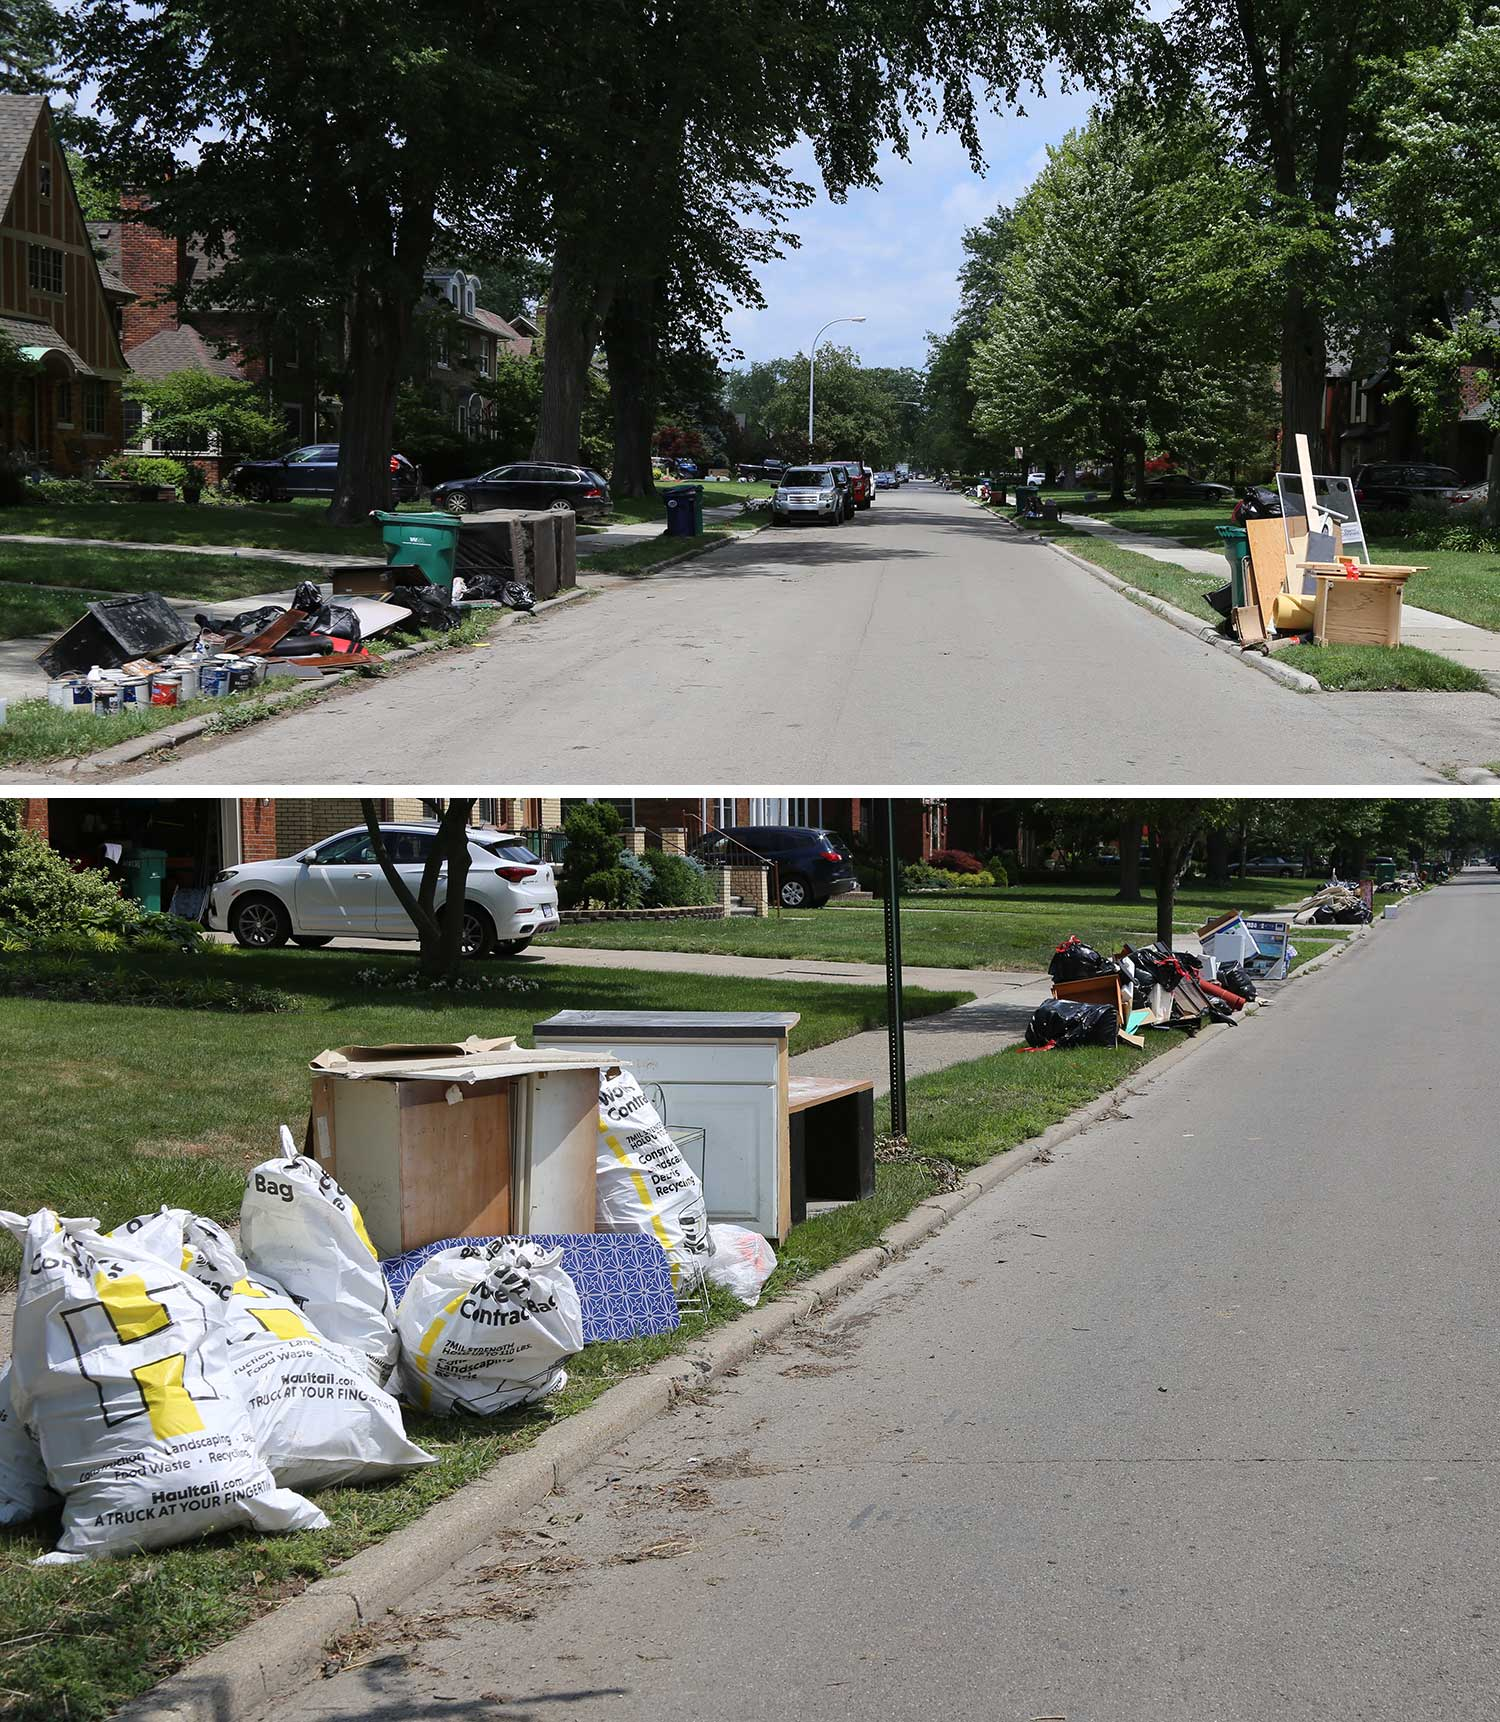 One outcome of the flooding is residents disposing of their belongings that were ruined when basements flooded.